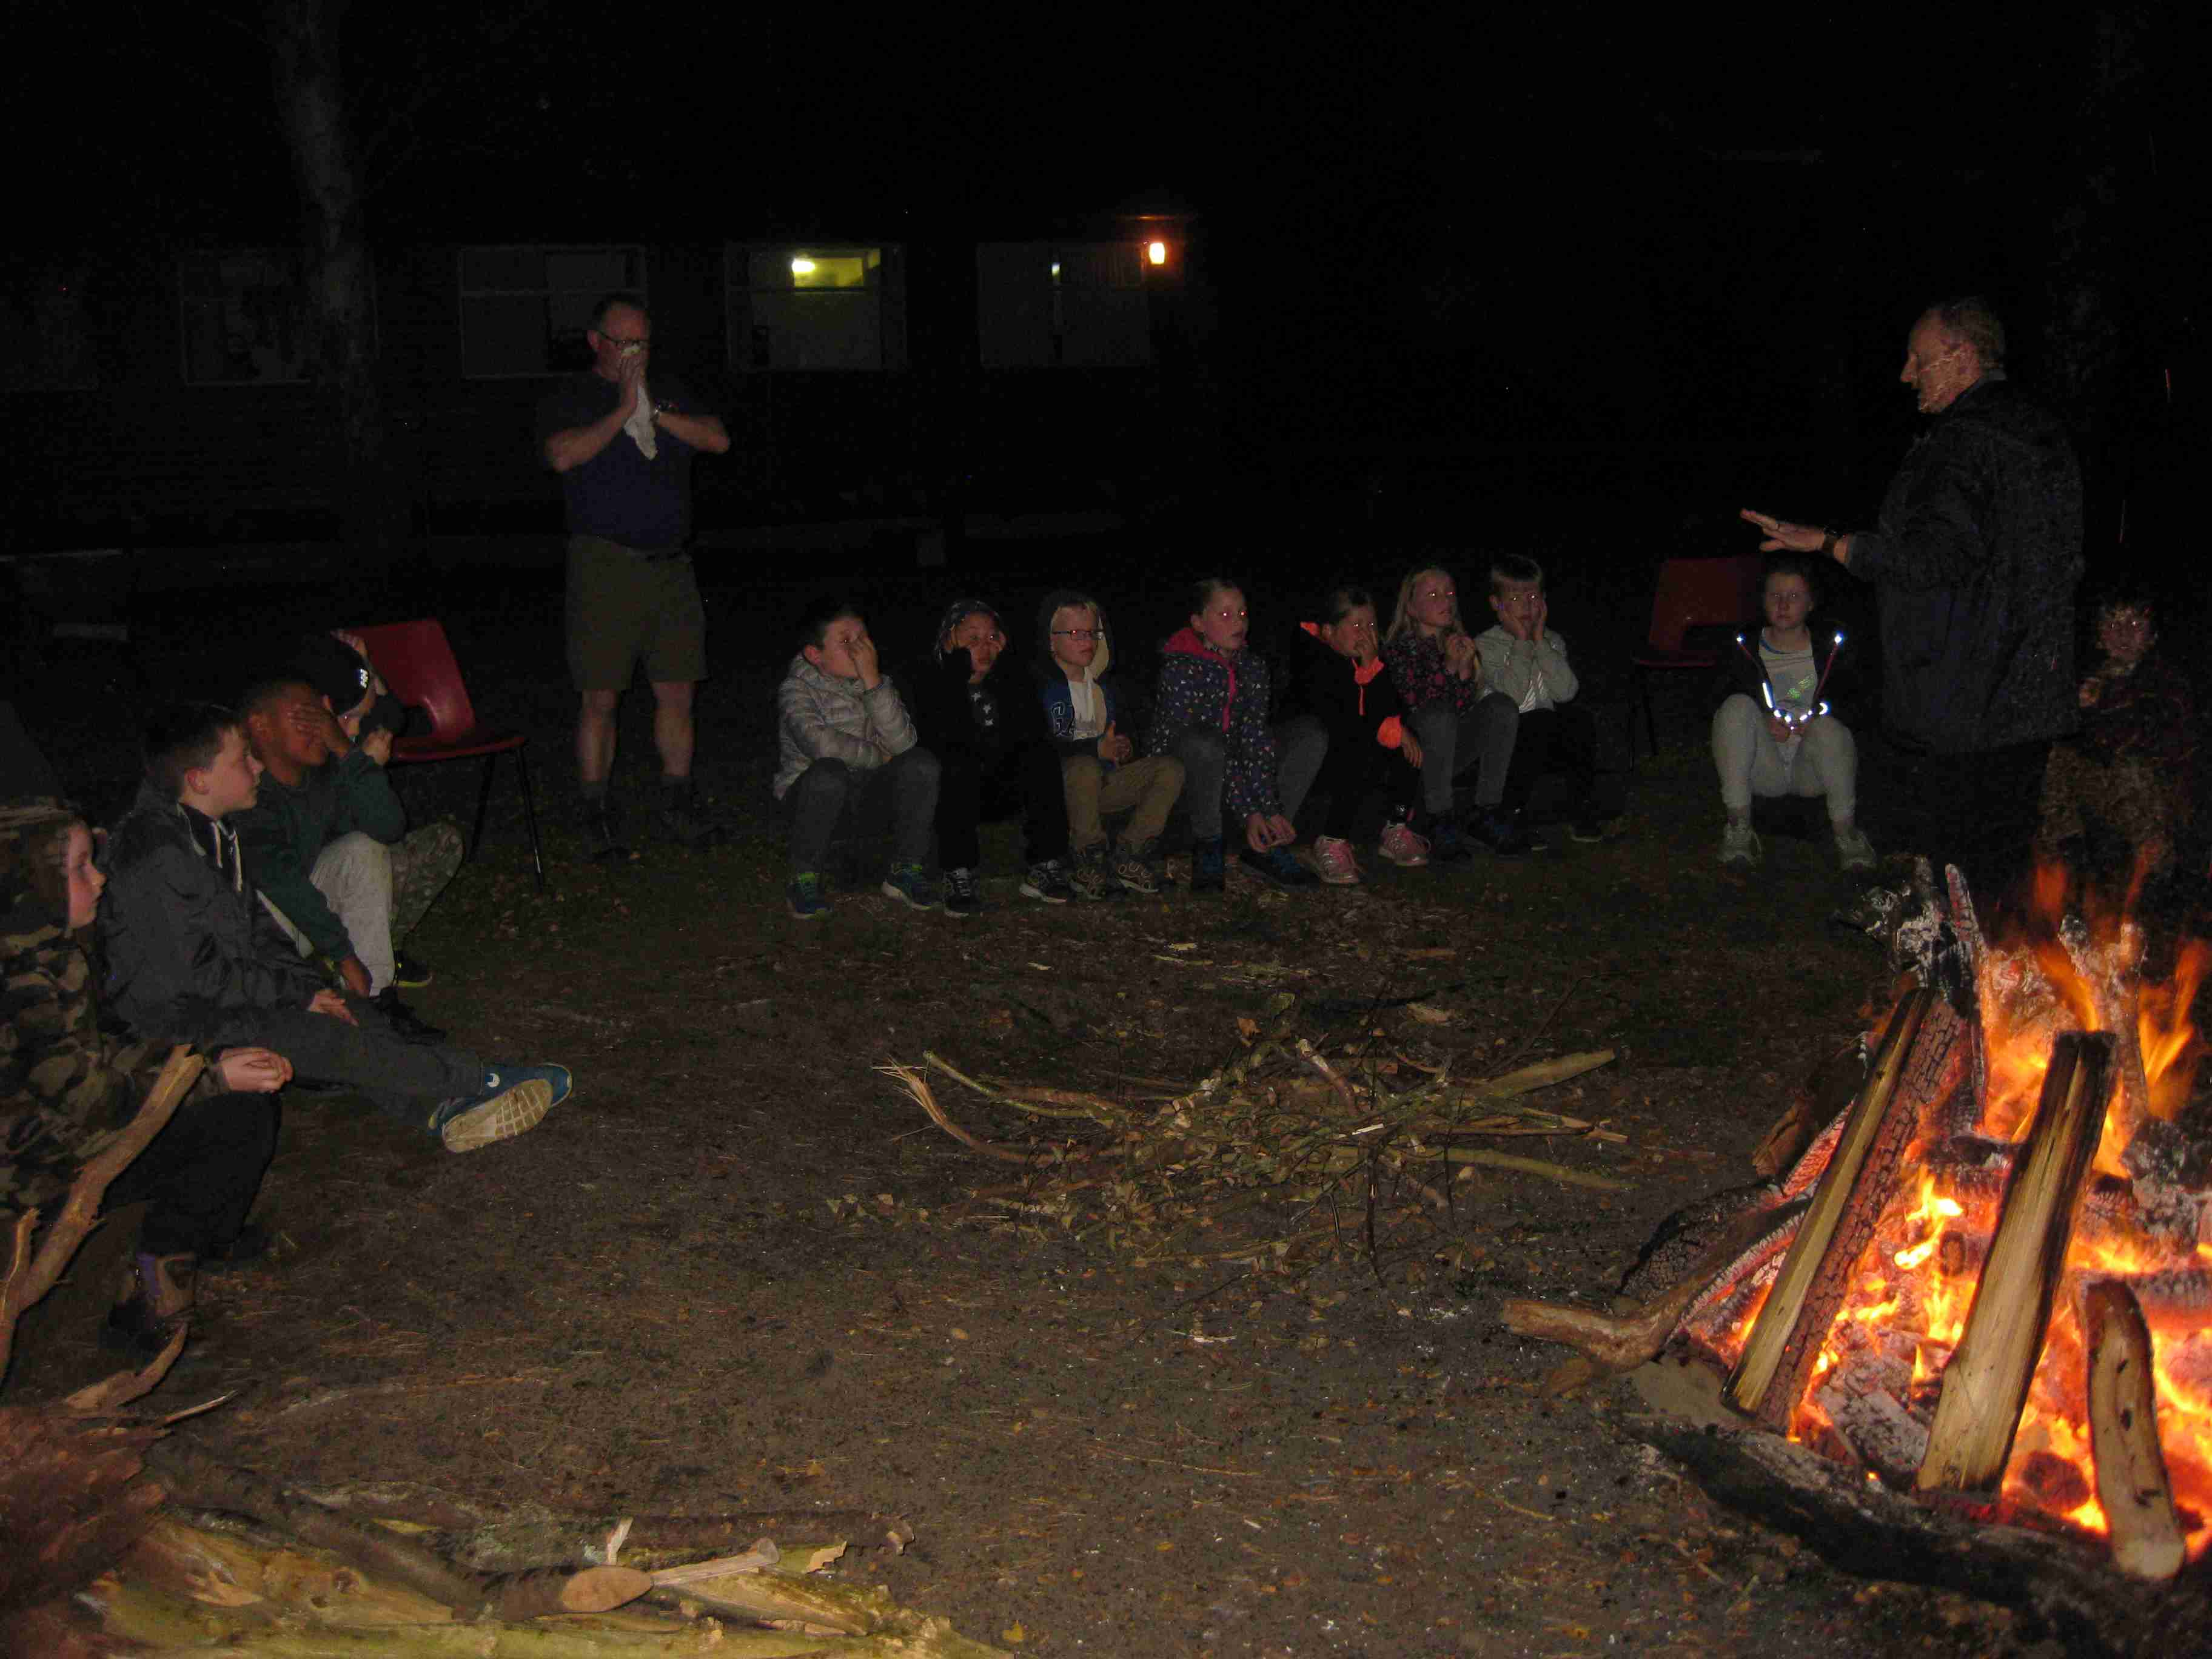 2017-10-07 7M Holiday Campfire (9)